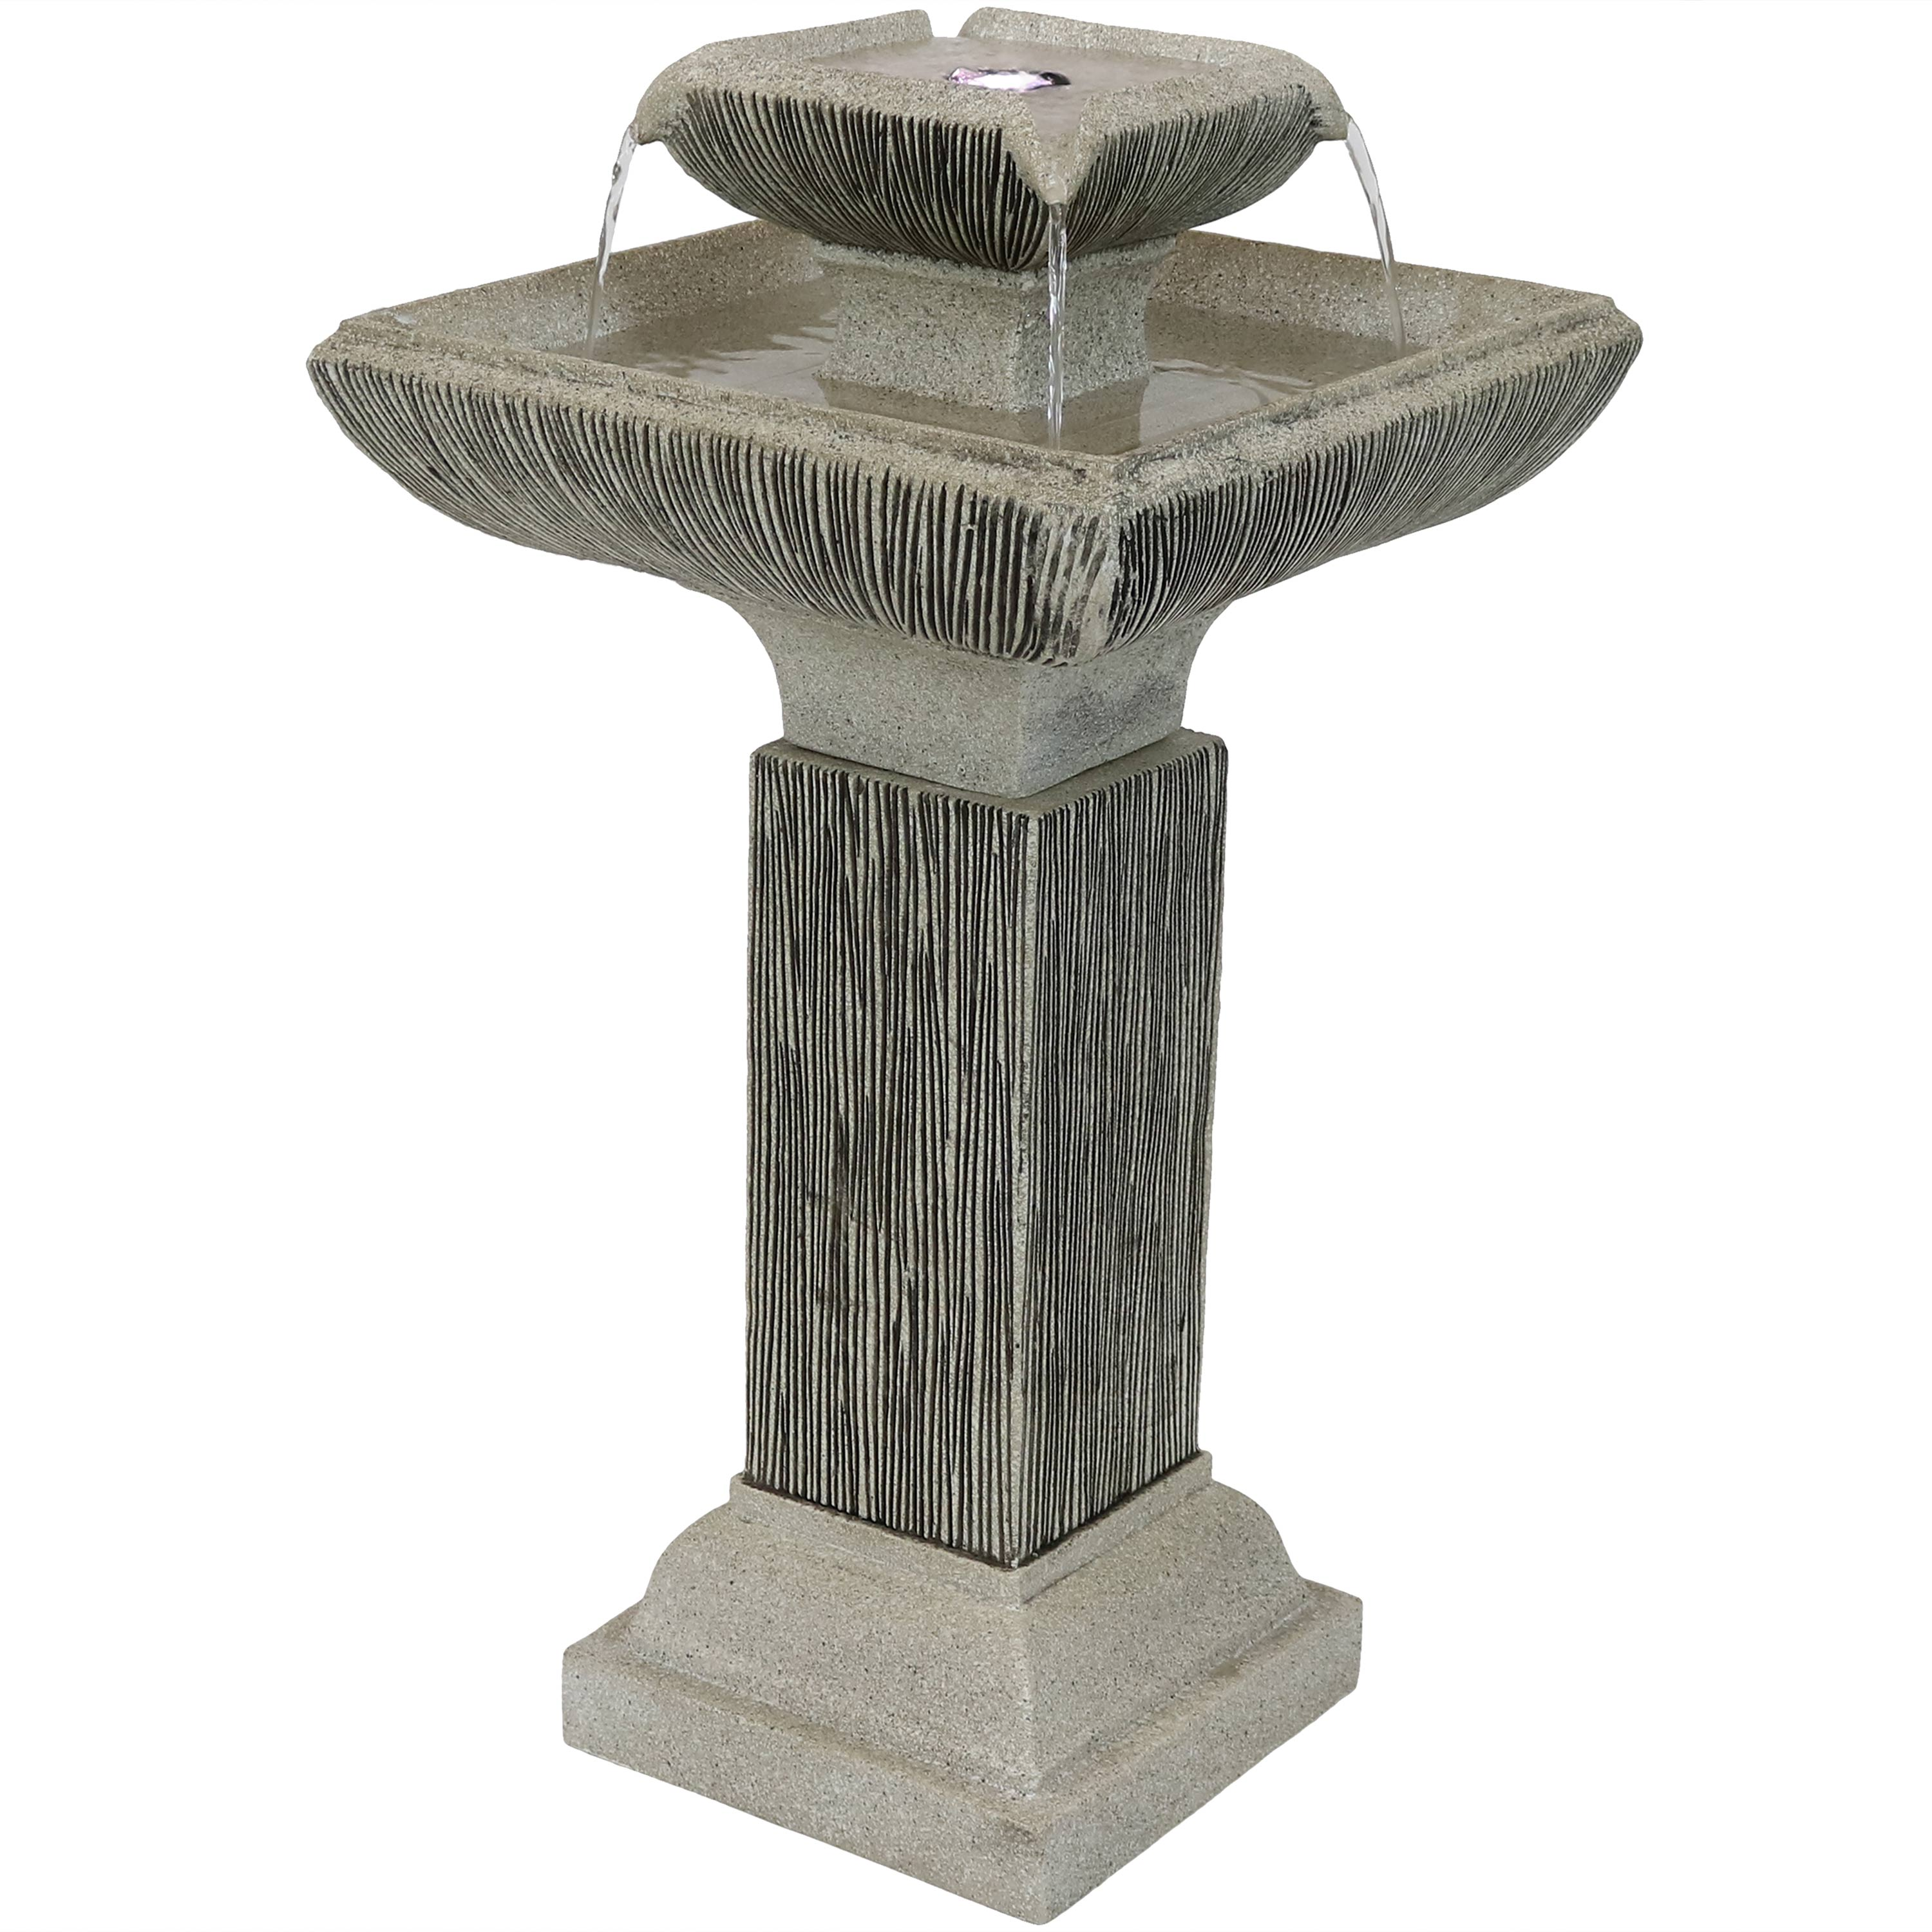 Square Bird Bath Water Fountain Led Lights Submersible Pump Photo